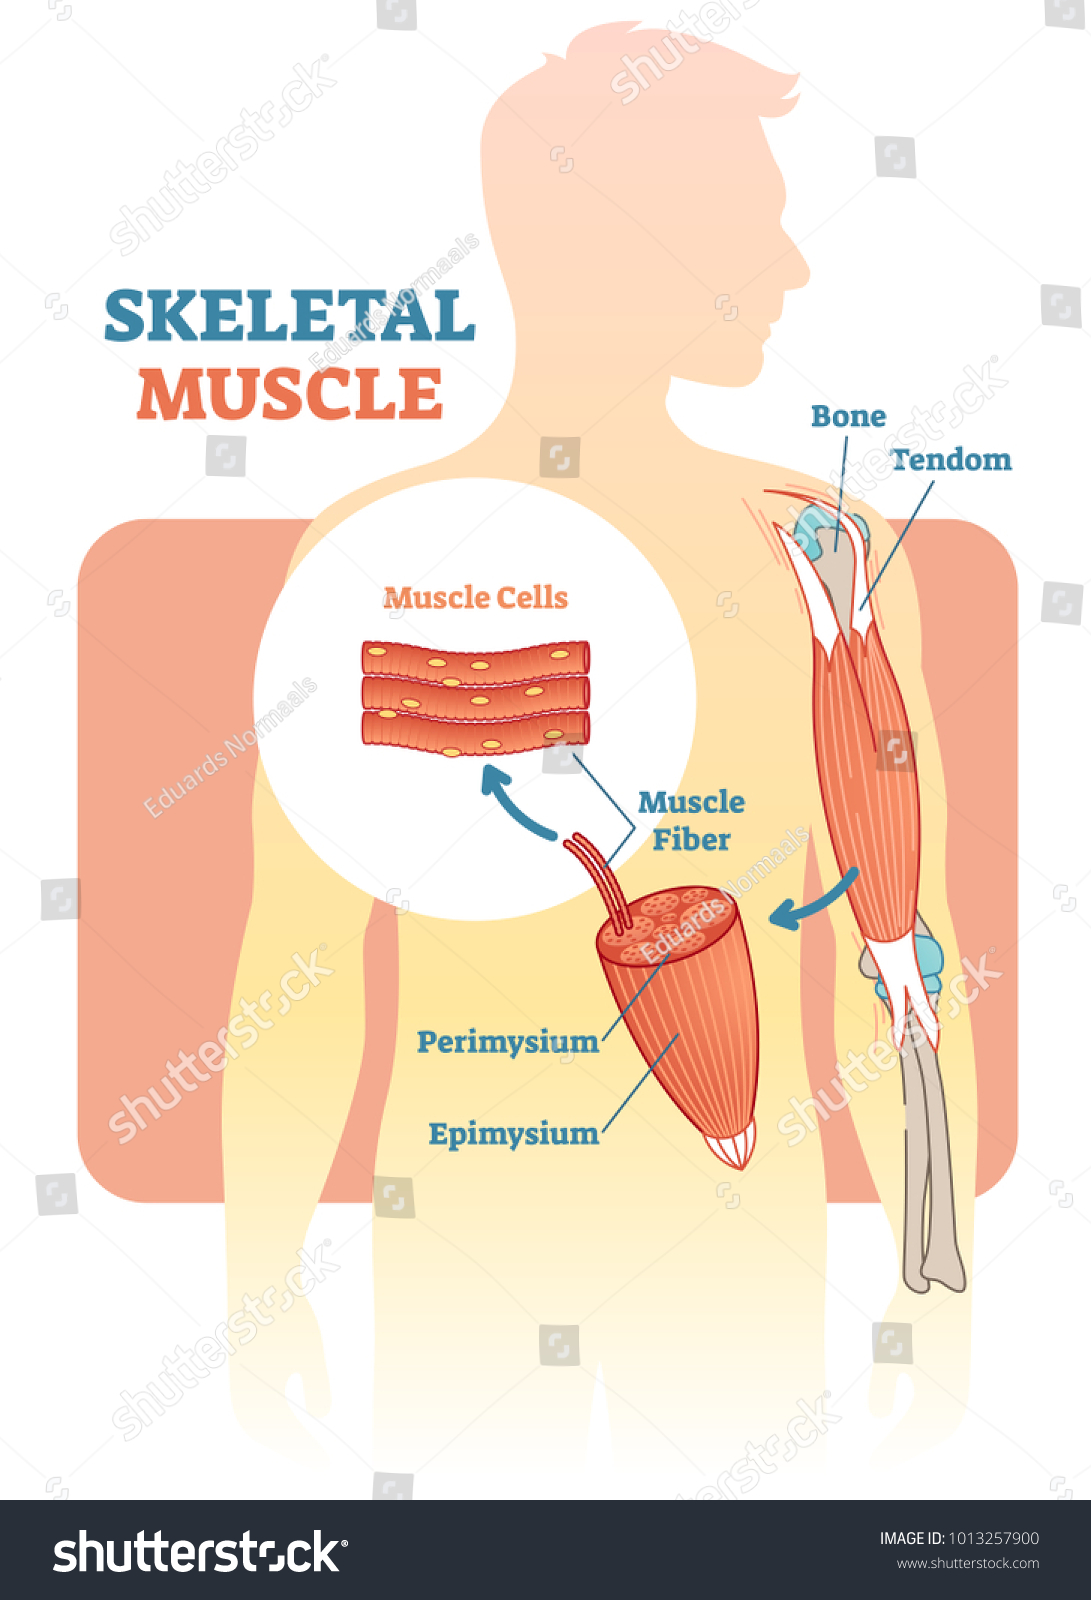 Skeletal Muscle Vector Illustration Diagram Anatomical Stock Vector